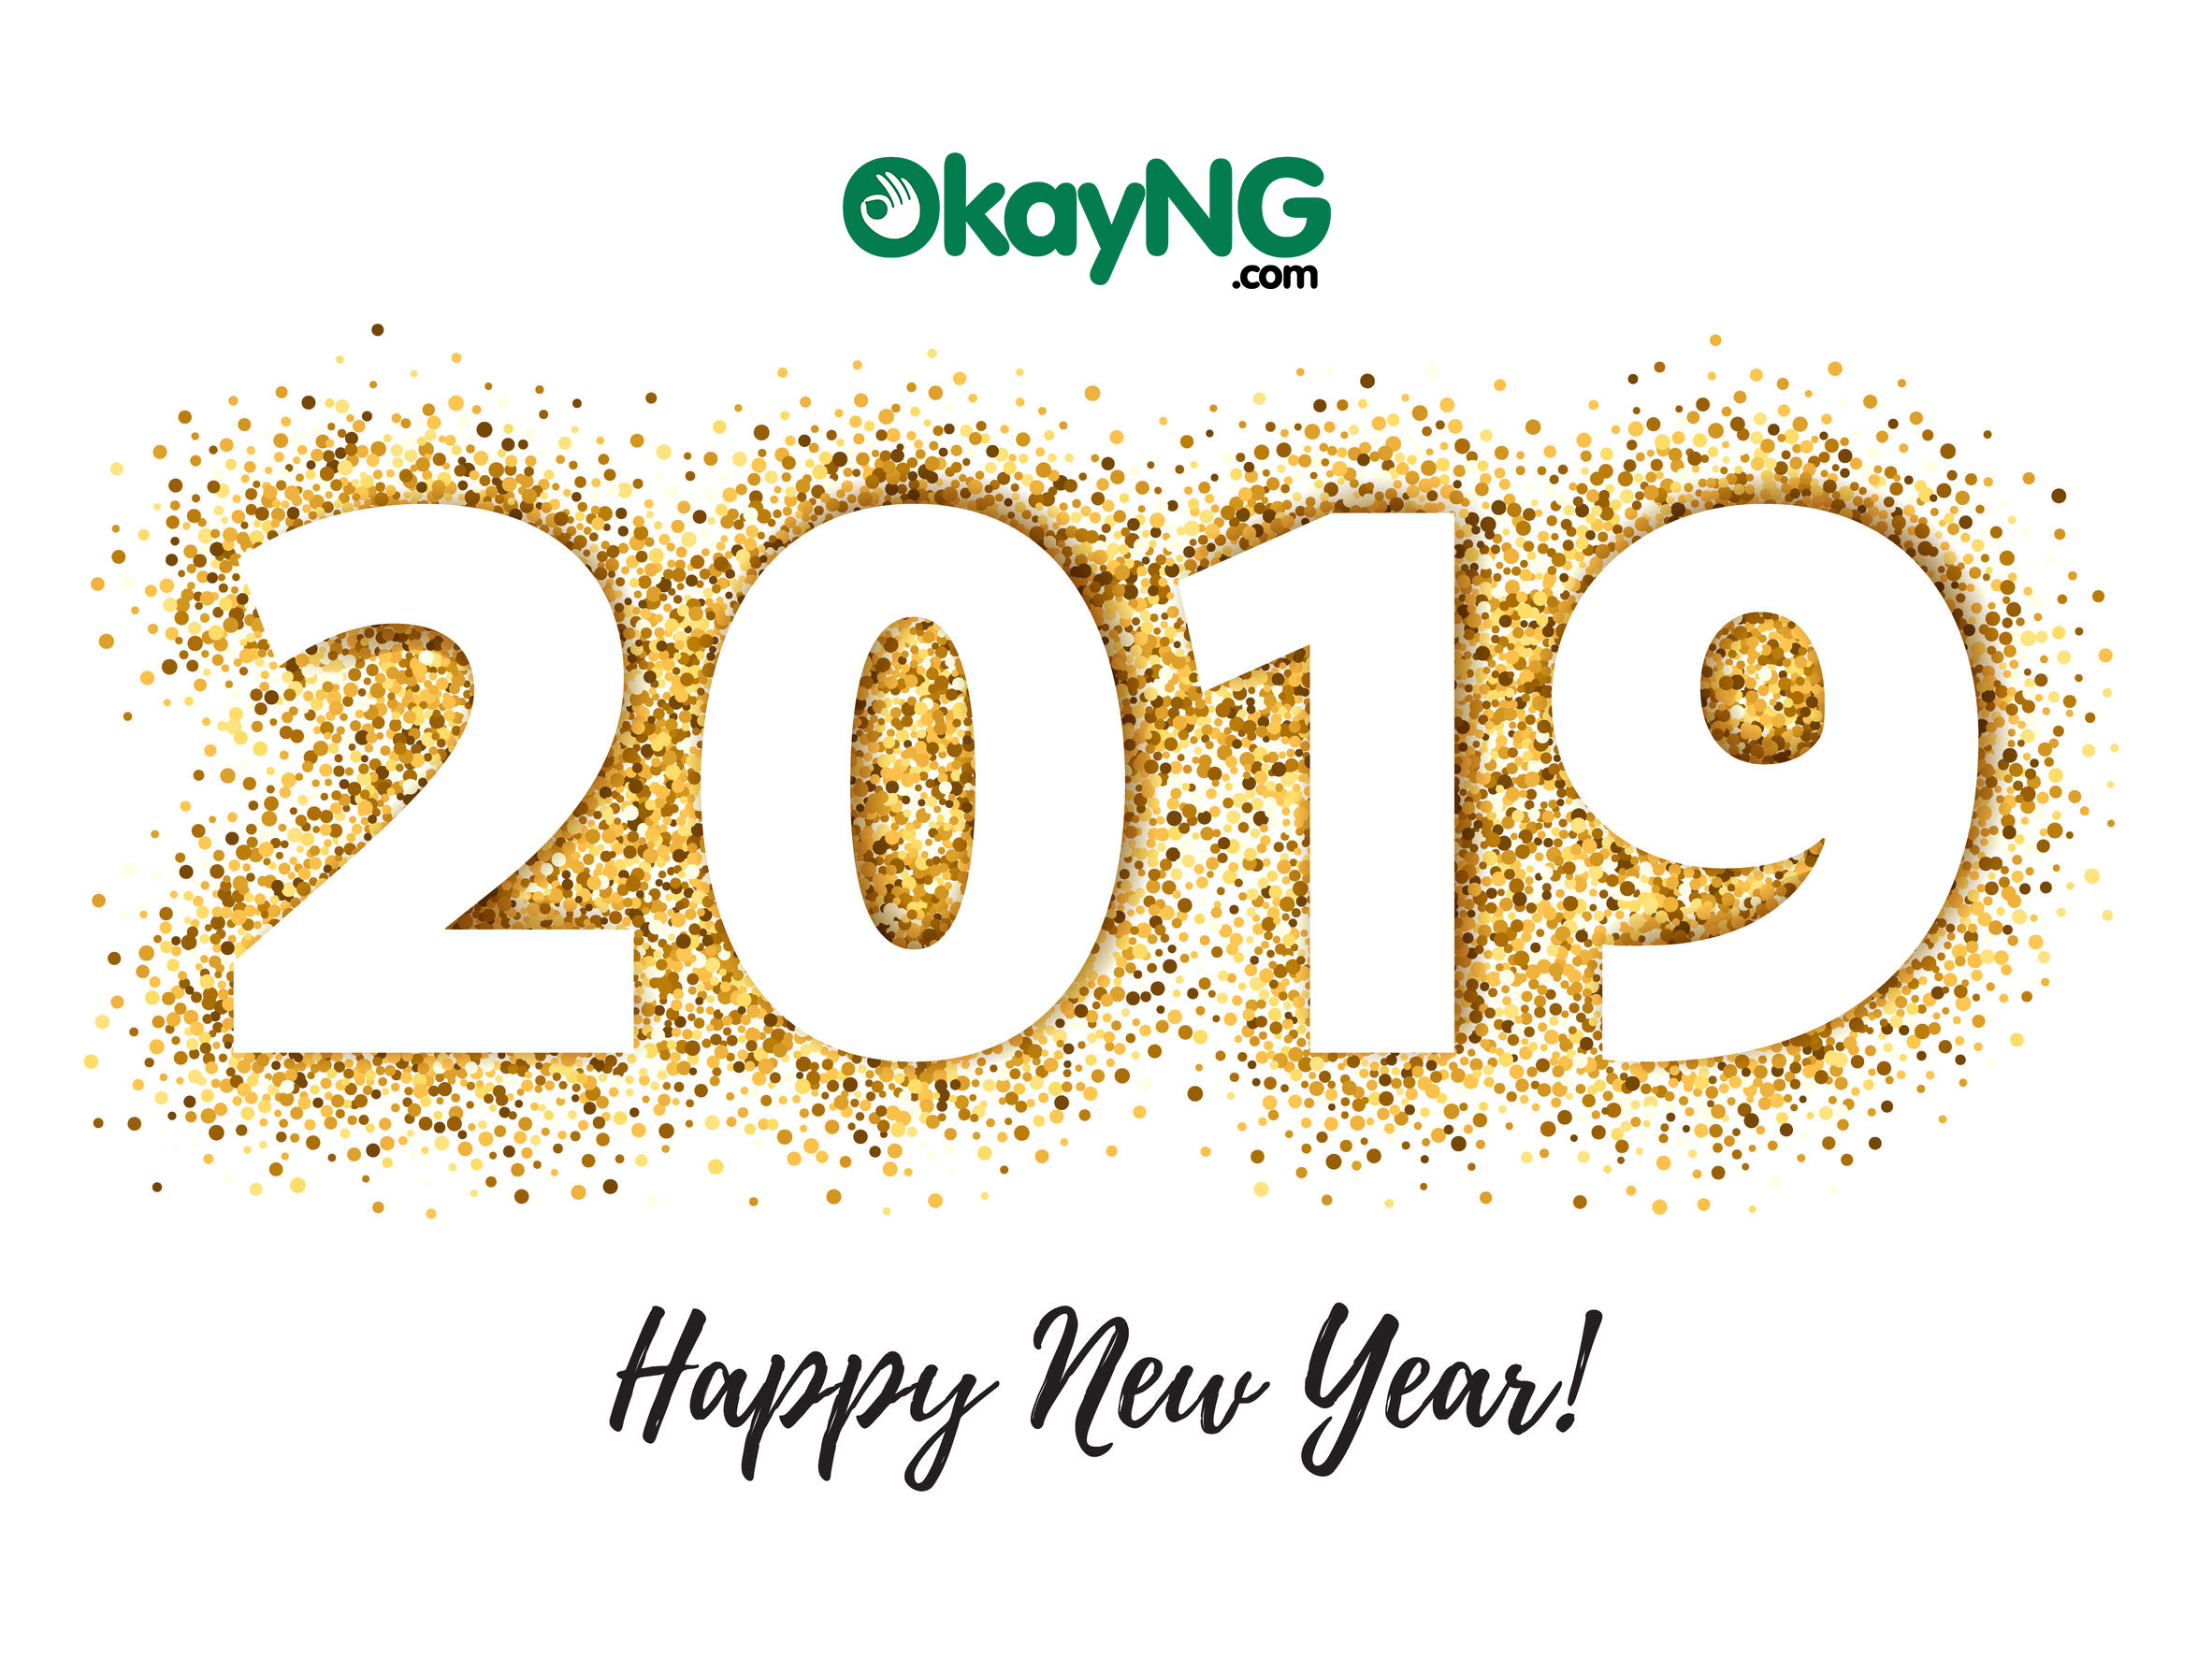 2019 1 OkayNG - Happy New Year From All Of Us at Okay Nigeria [okay.ng]